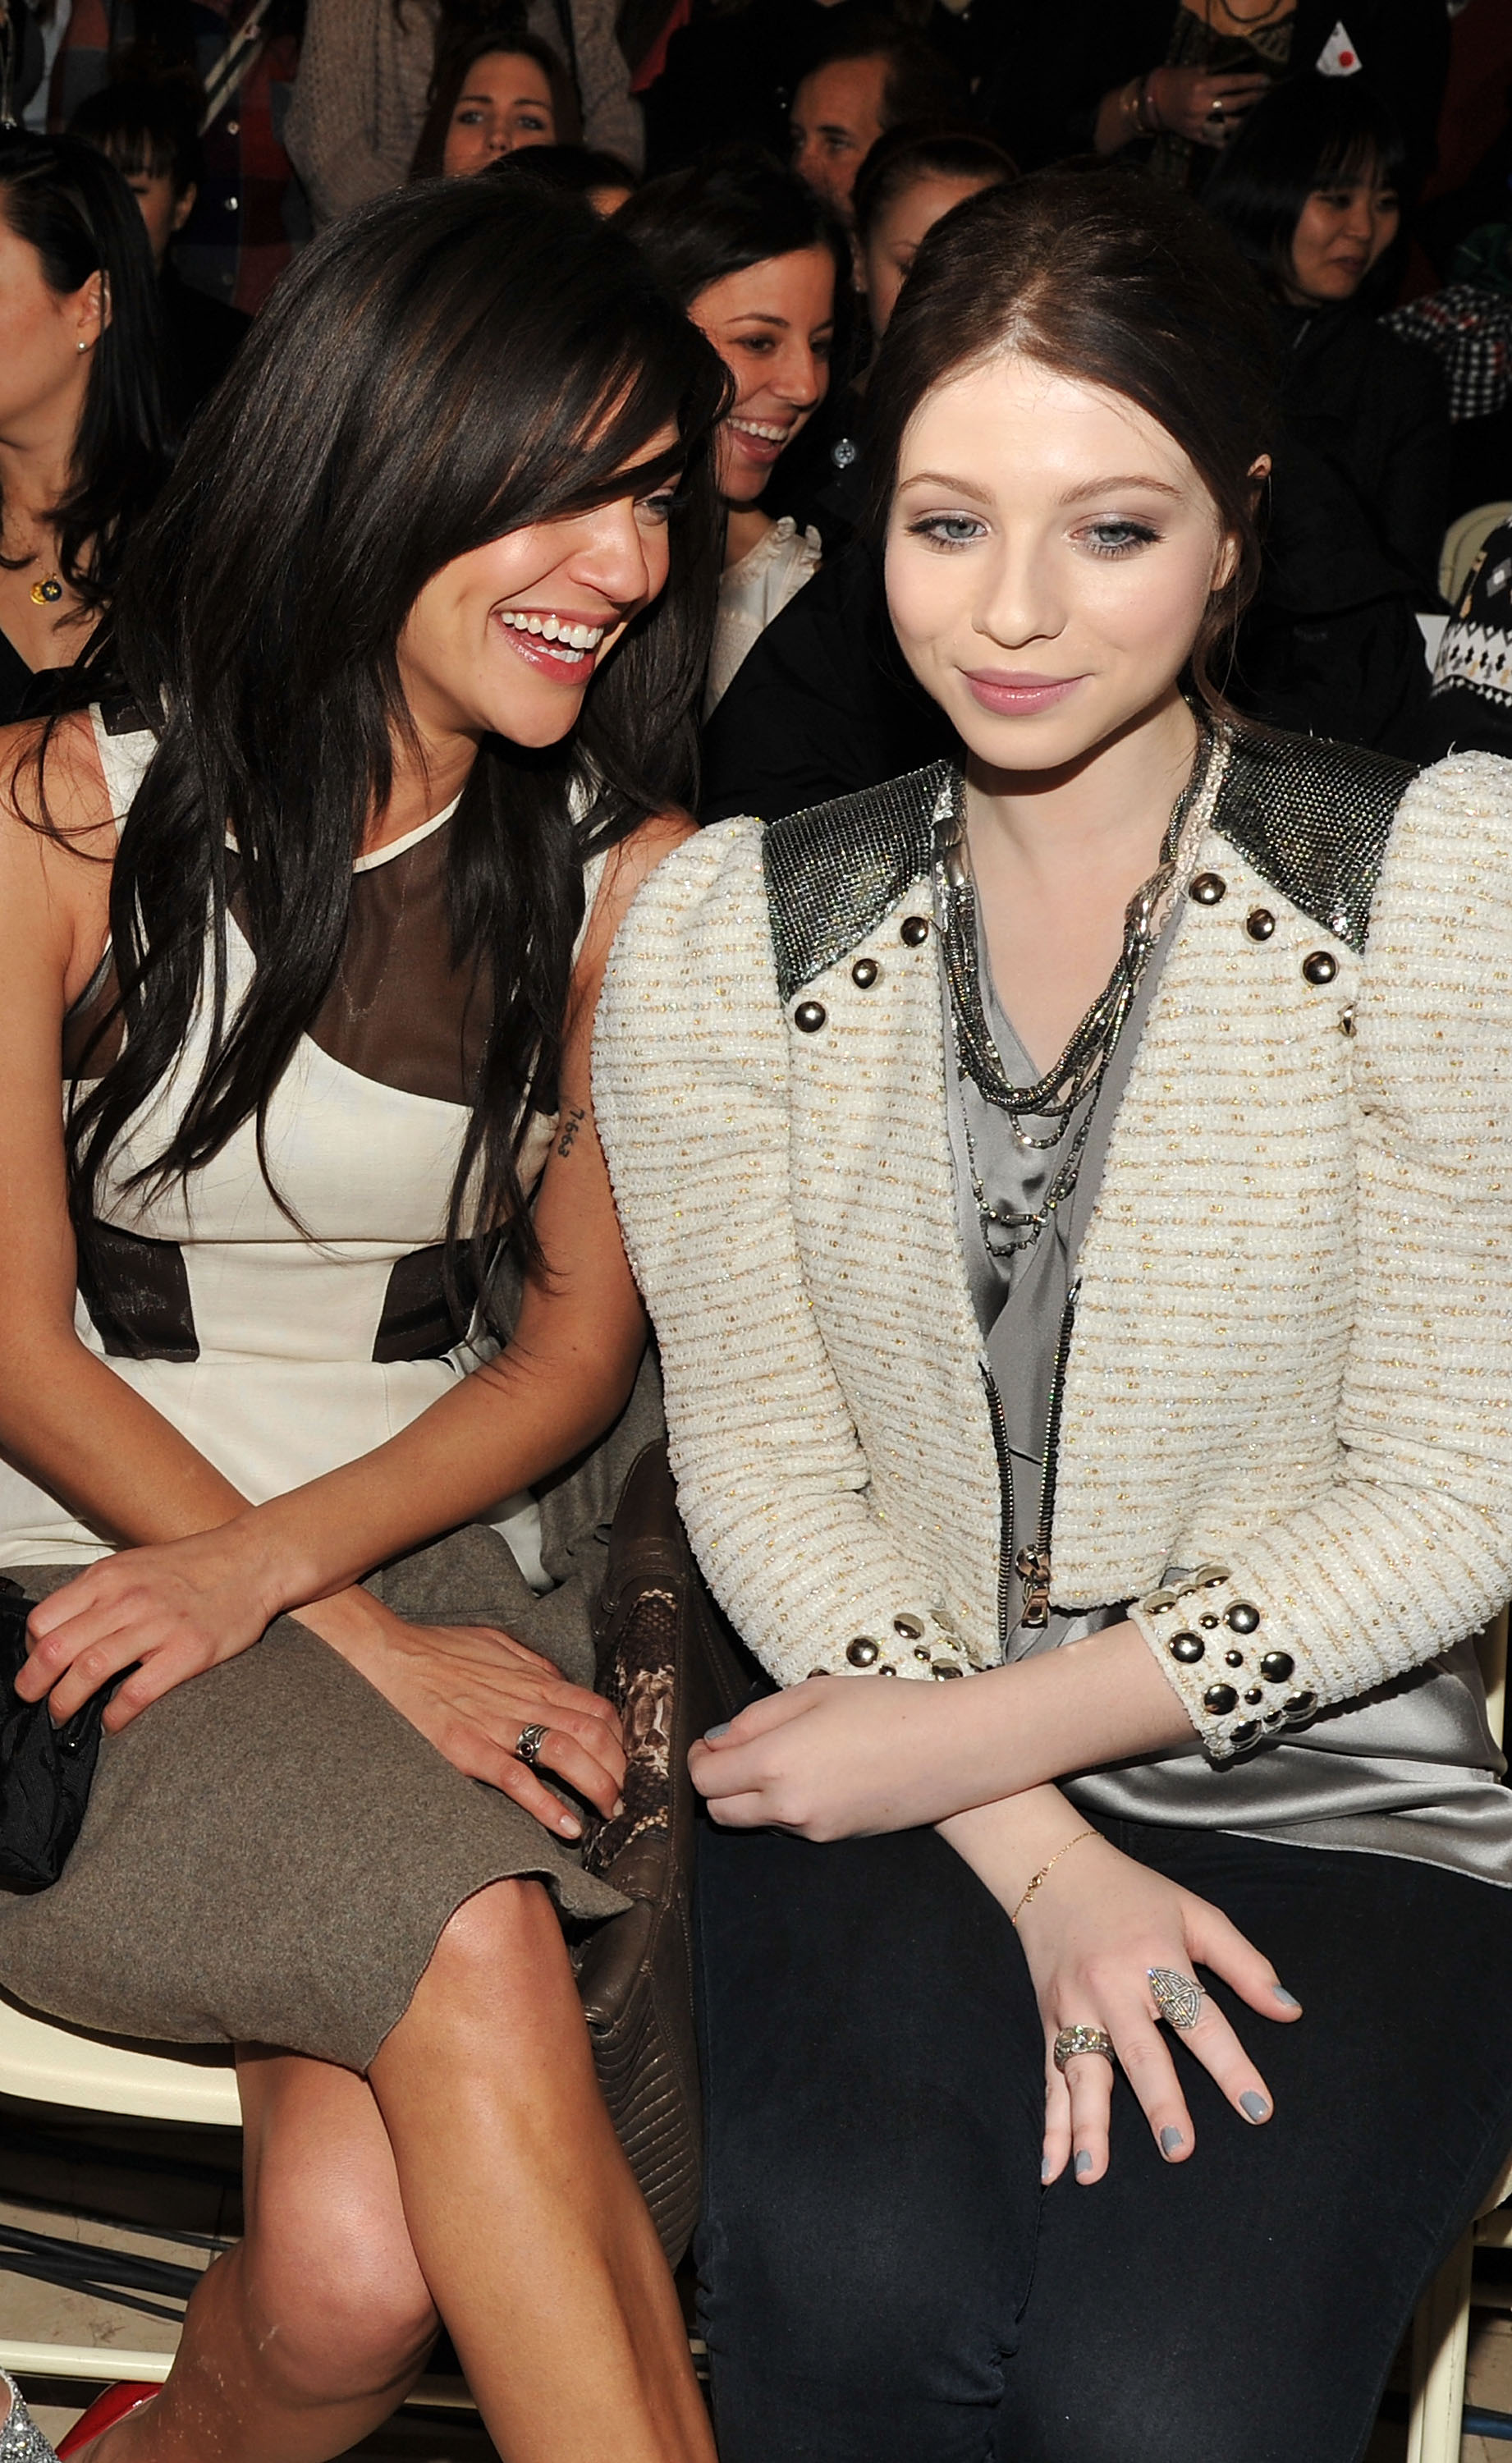 Jessica Szohr and Michelle Trachtenberg